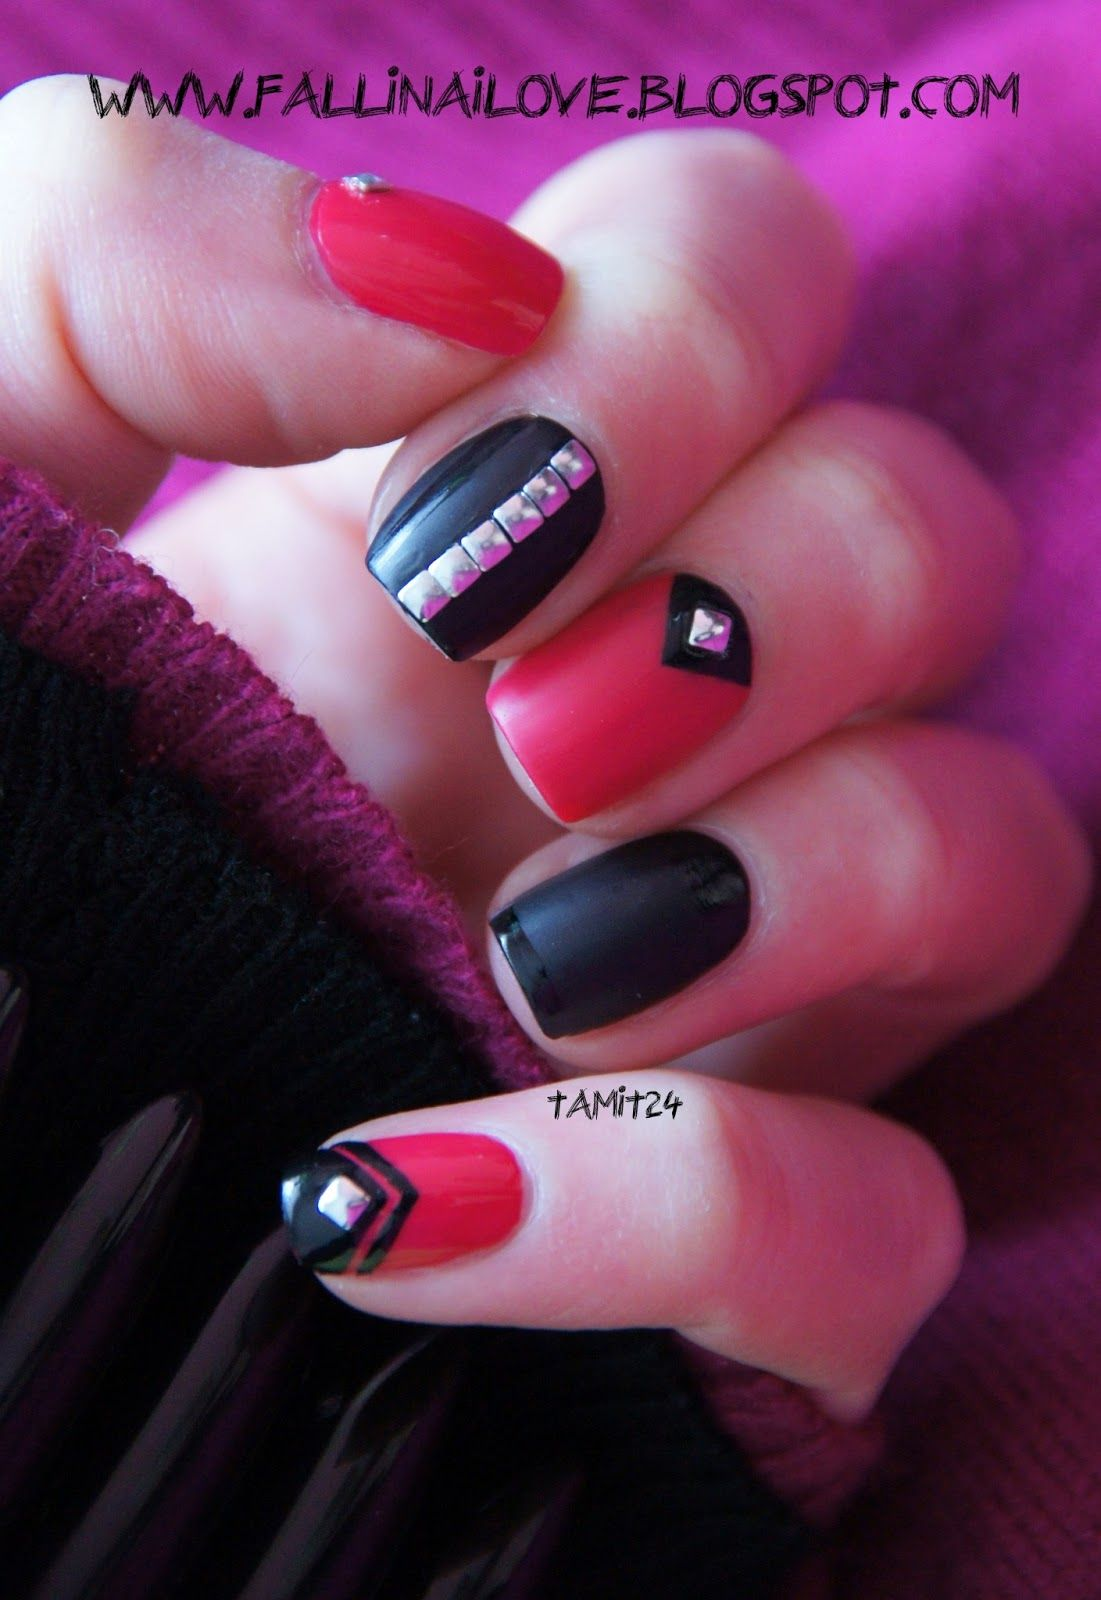 fall in ...naiLove!: PUNK ROCK nails...